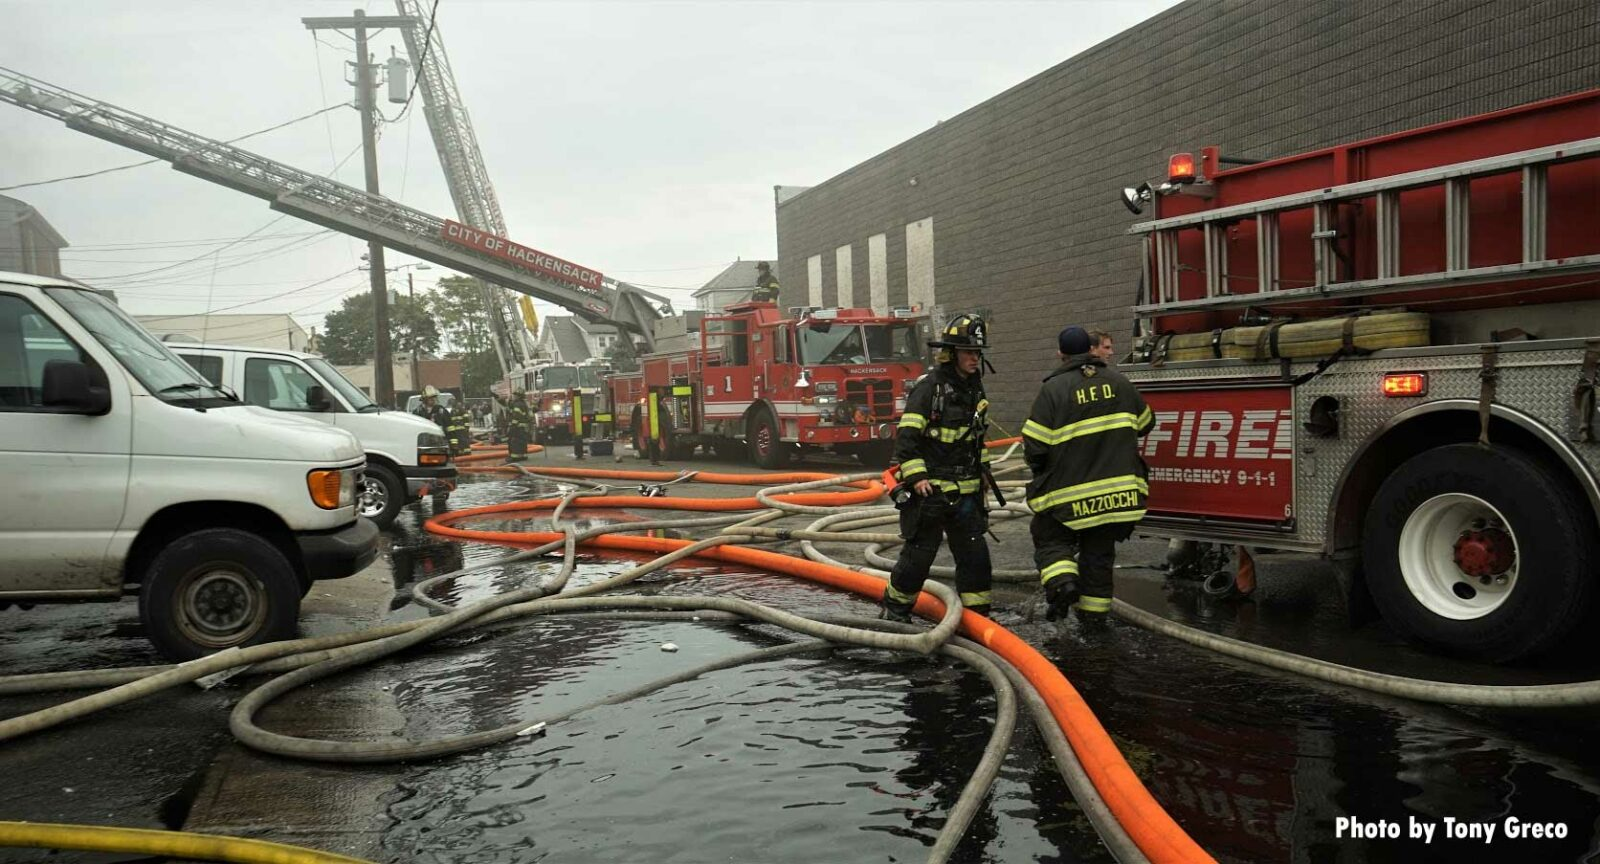 Firefighters and fire apparatus at scene of Hackensack fire